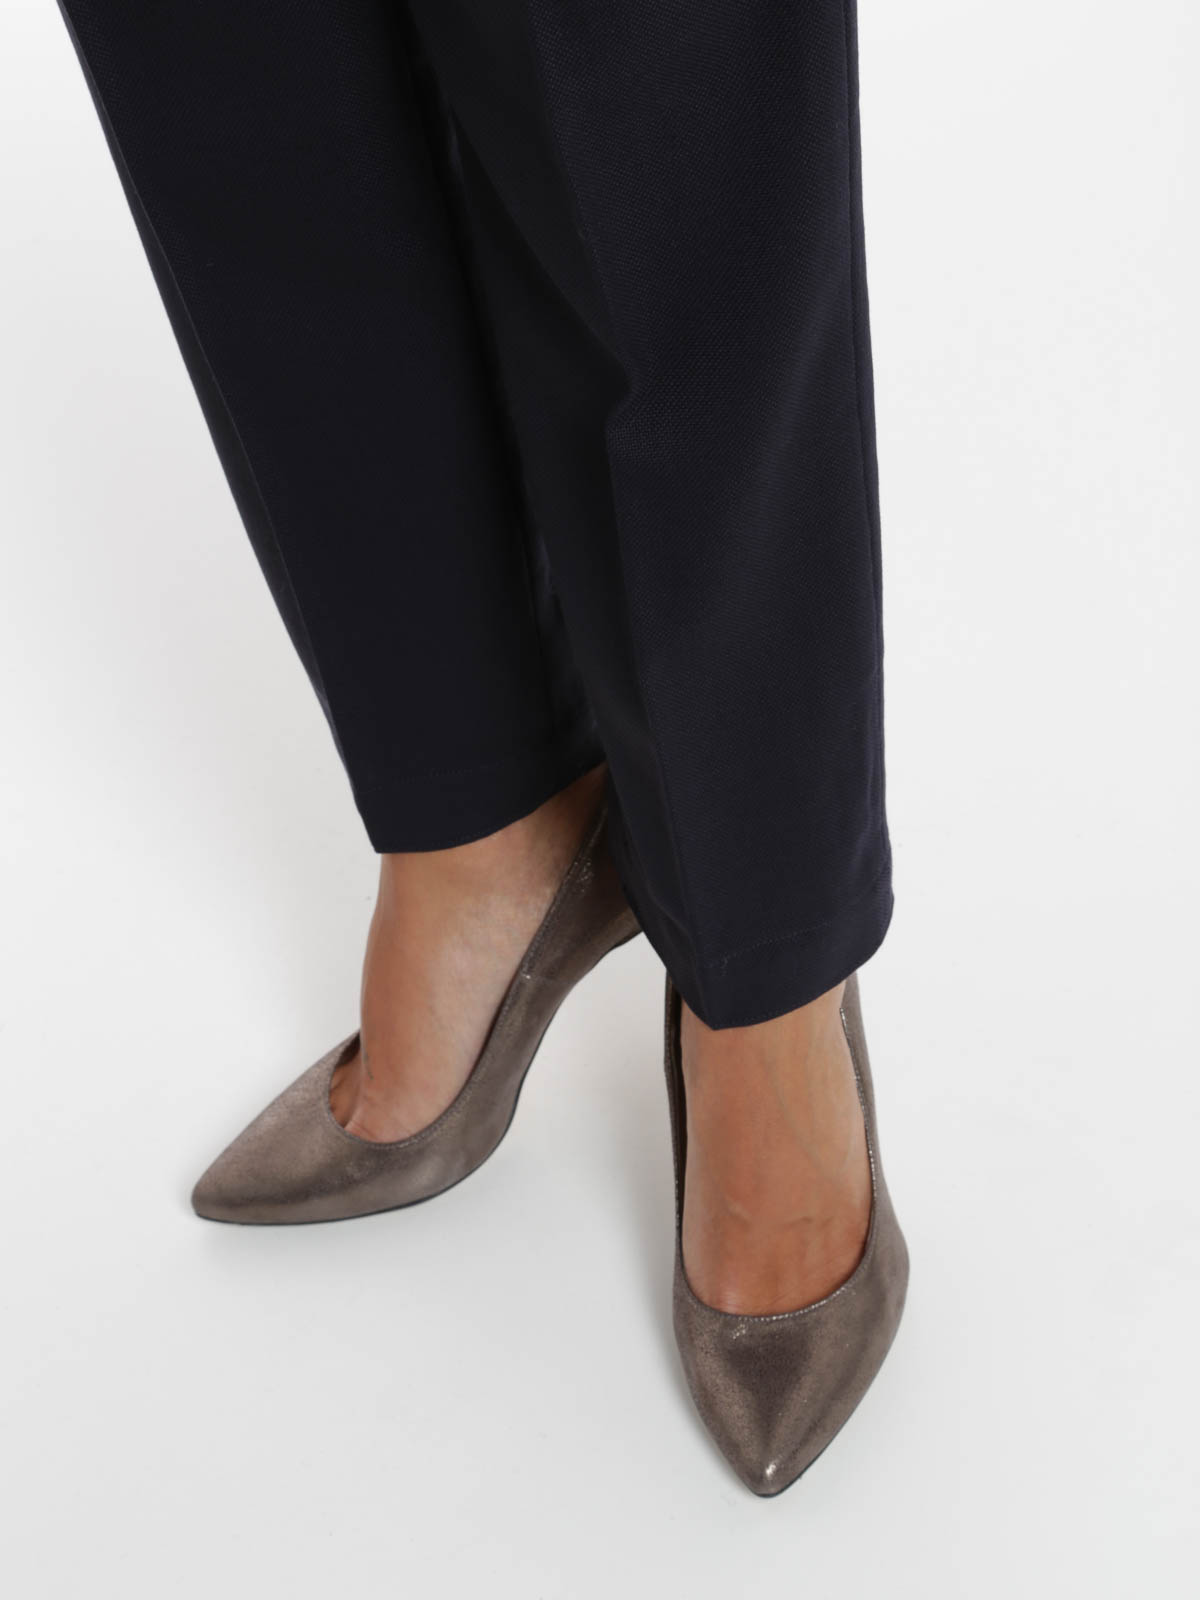 893bd751d7a7 iKRIX TORY BURCH: Stretch suiting pants. TORY BURCH: Tailored & Formal ...